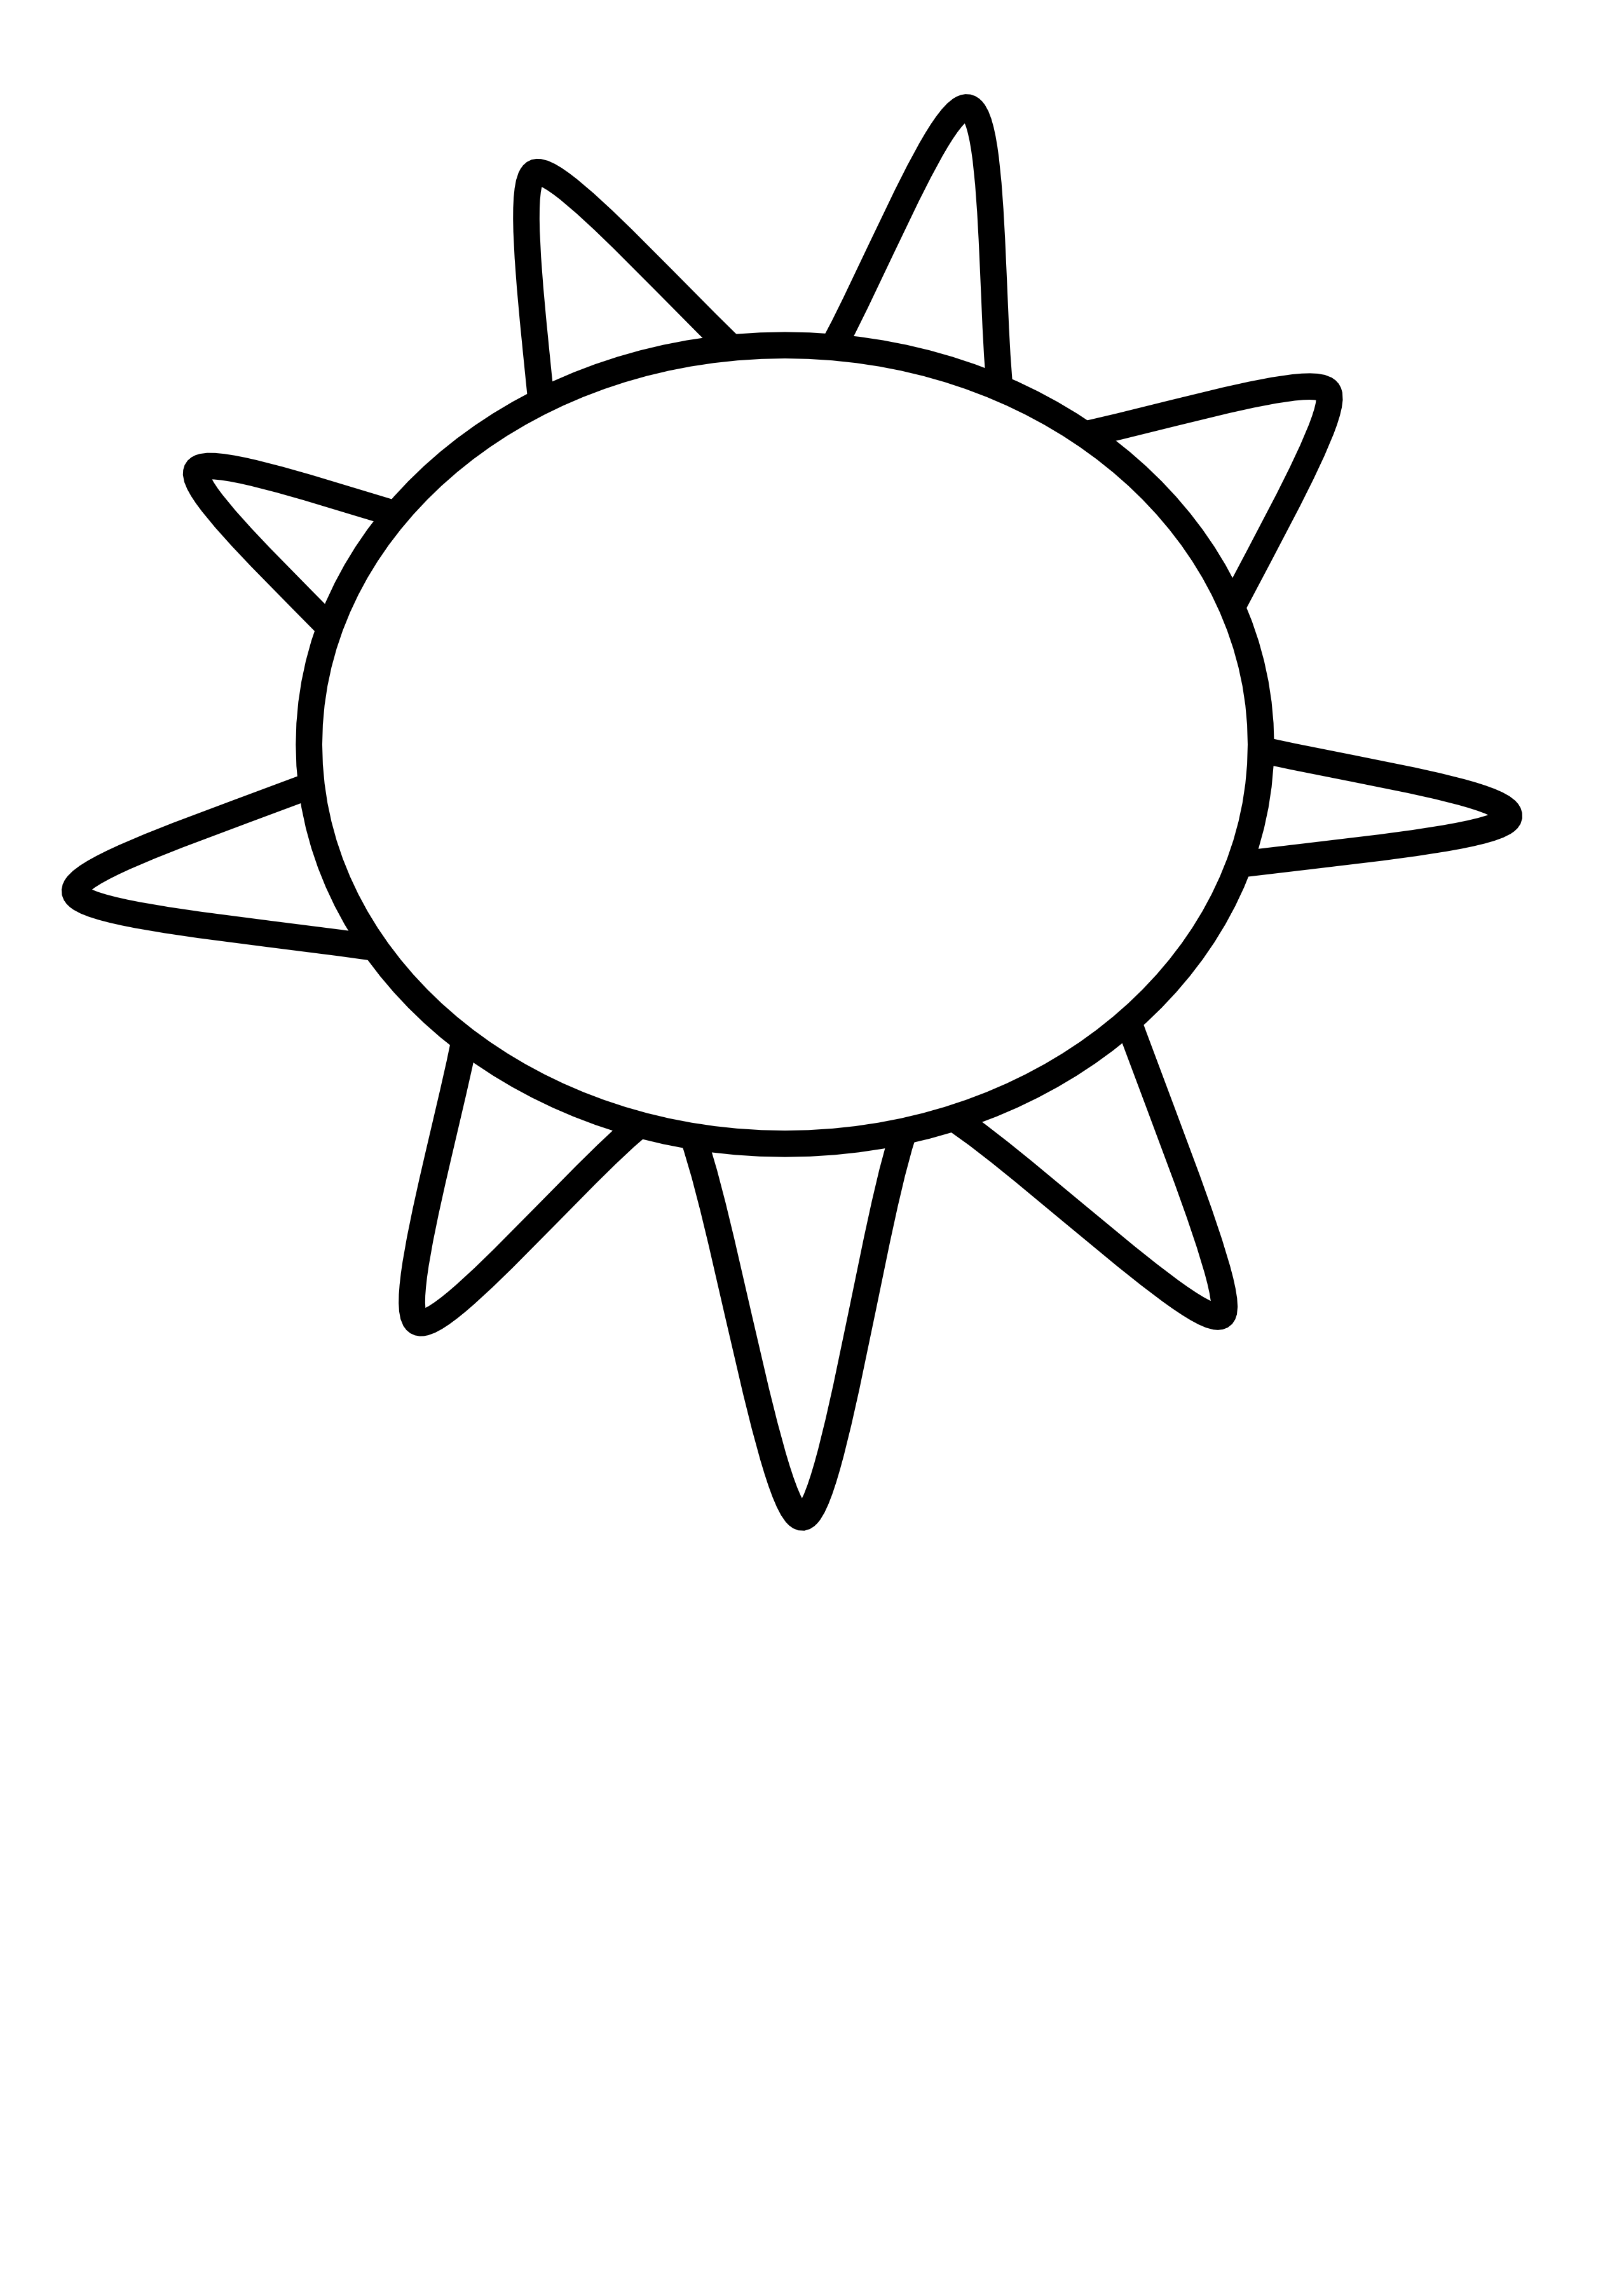 Sun Drawing Images | Free download best Sun Drawing Images